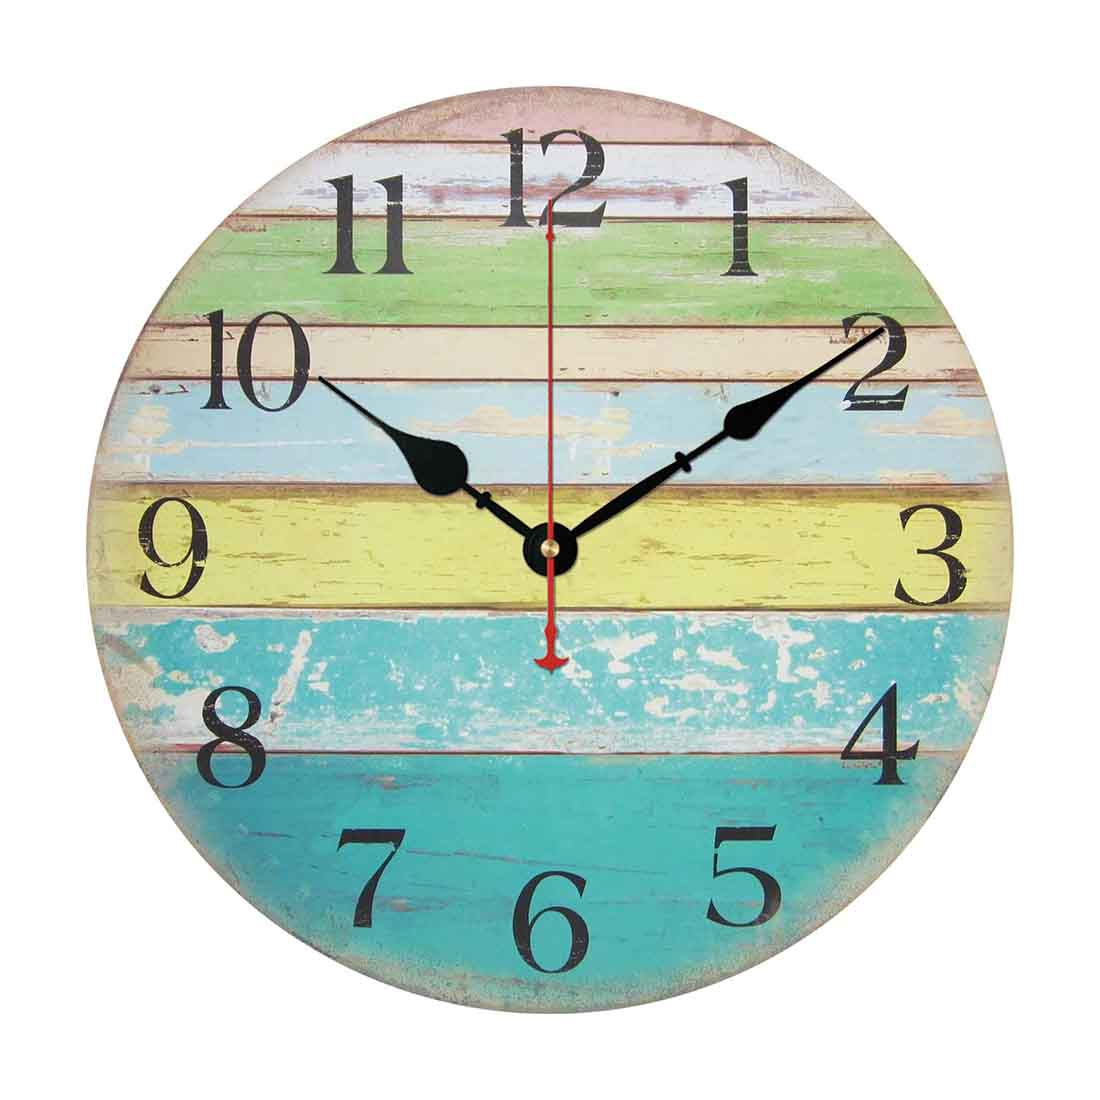 12-Inch Wall Clock, Vintage Rustic Country Tuscan Style Silent Wooden Wall Clock Home... by